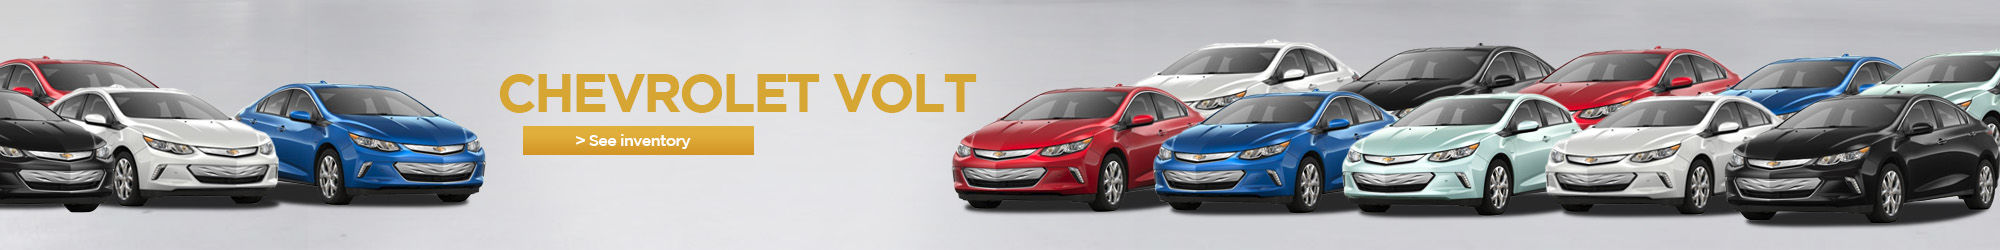 Chevrolet Volt in inventory!